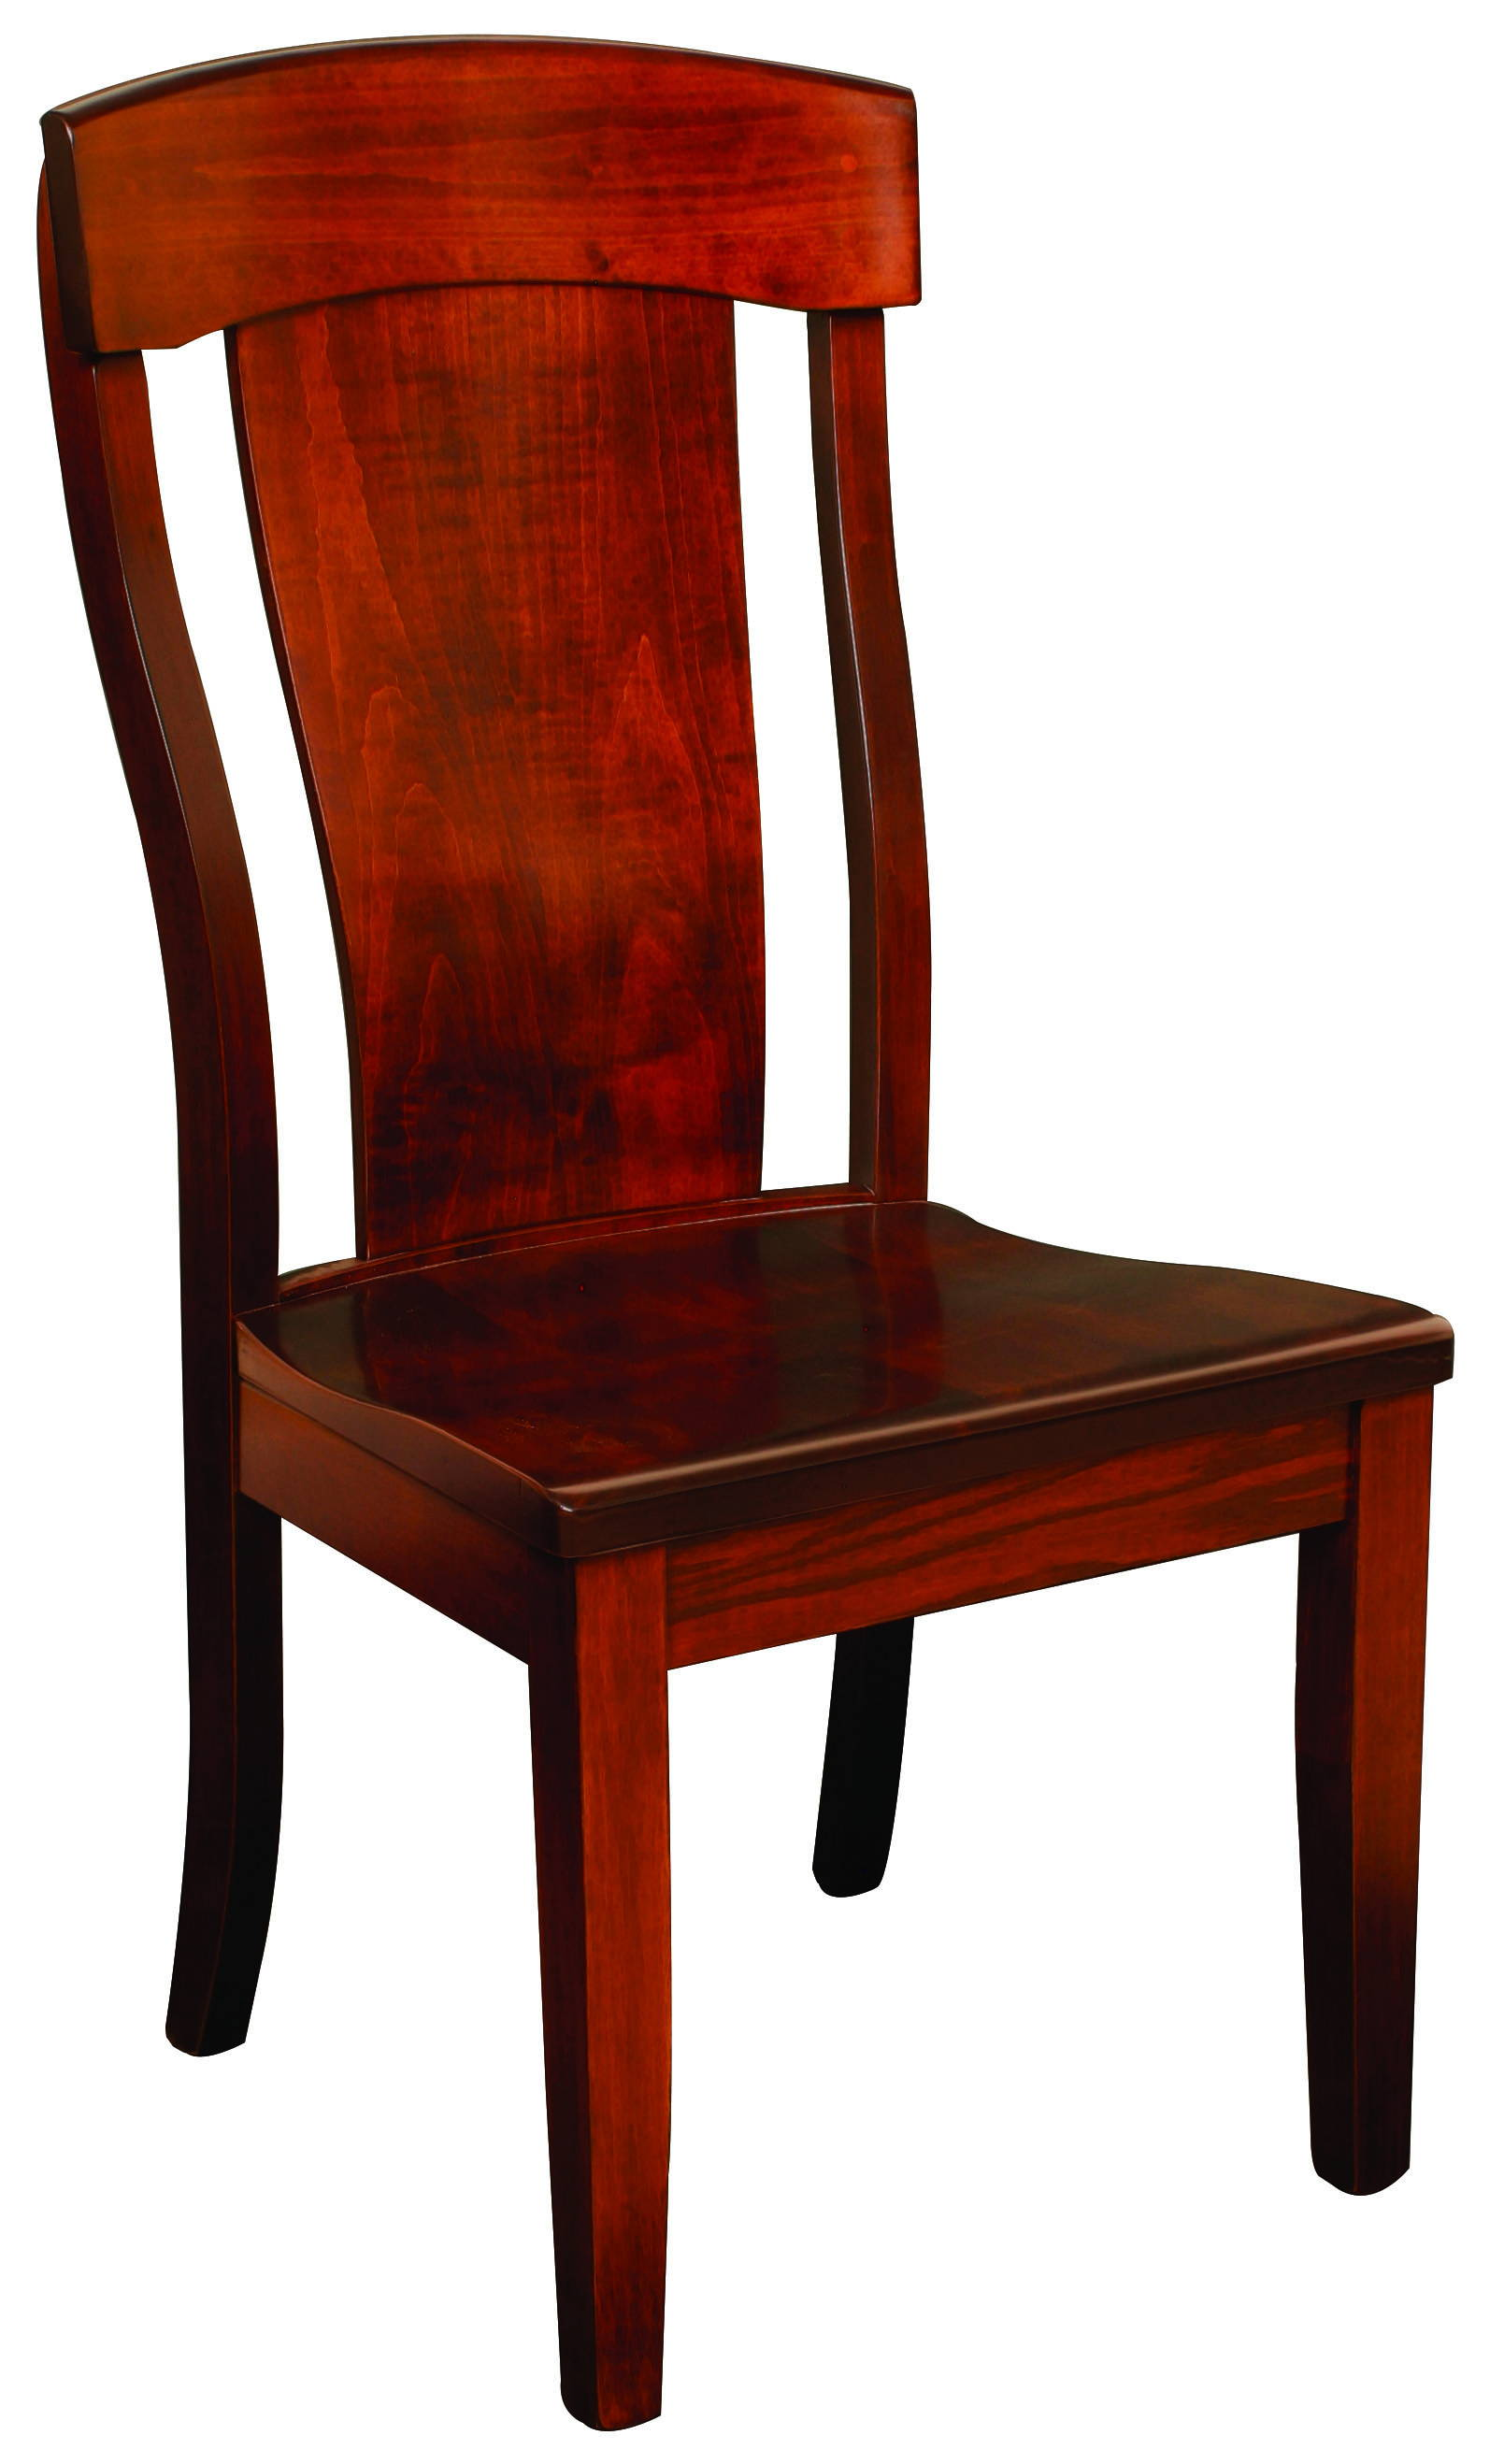 Kowan Solid Wood, Handcrafted Kitchen Chair or DIning Chair from Harvest Home Interiors Amish Furniture